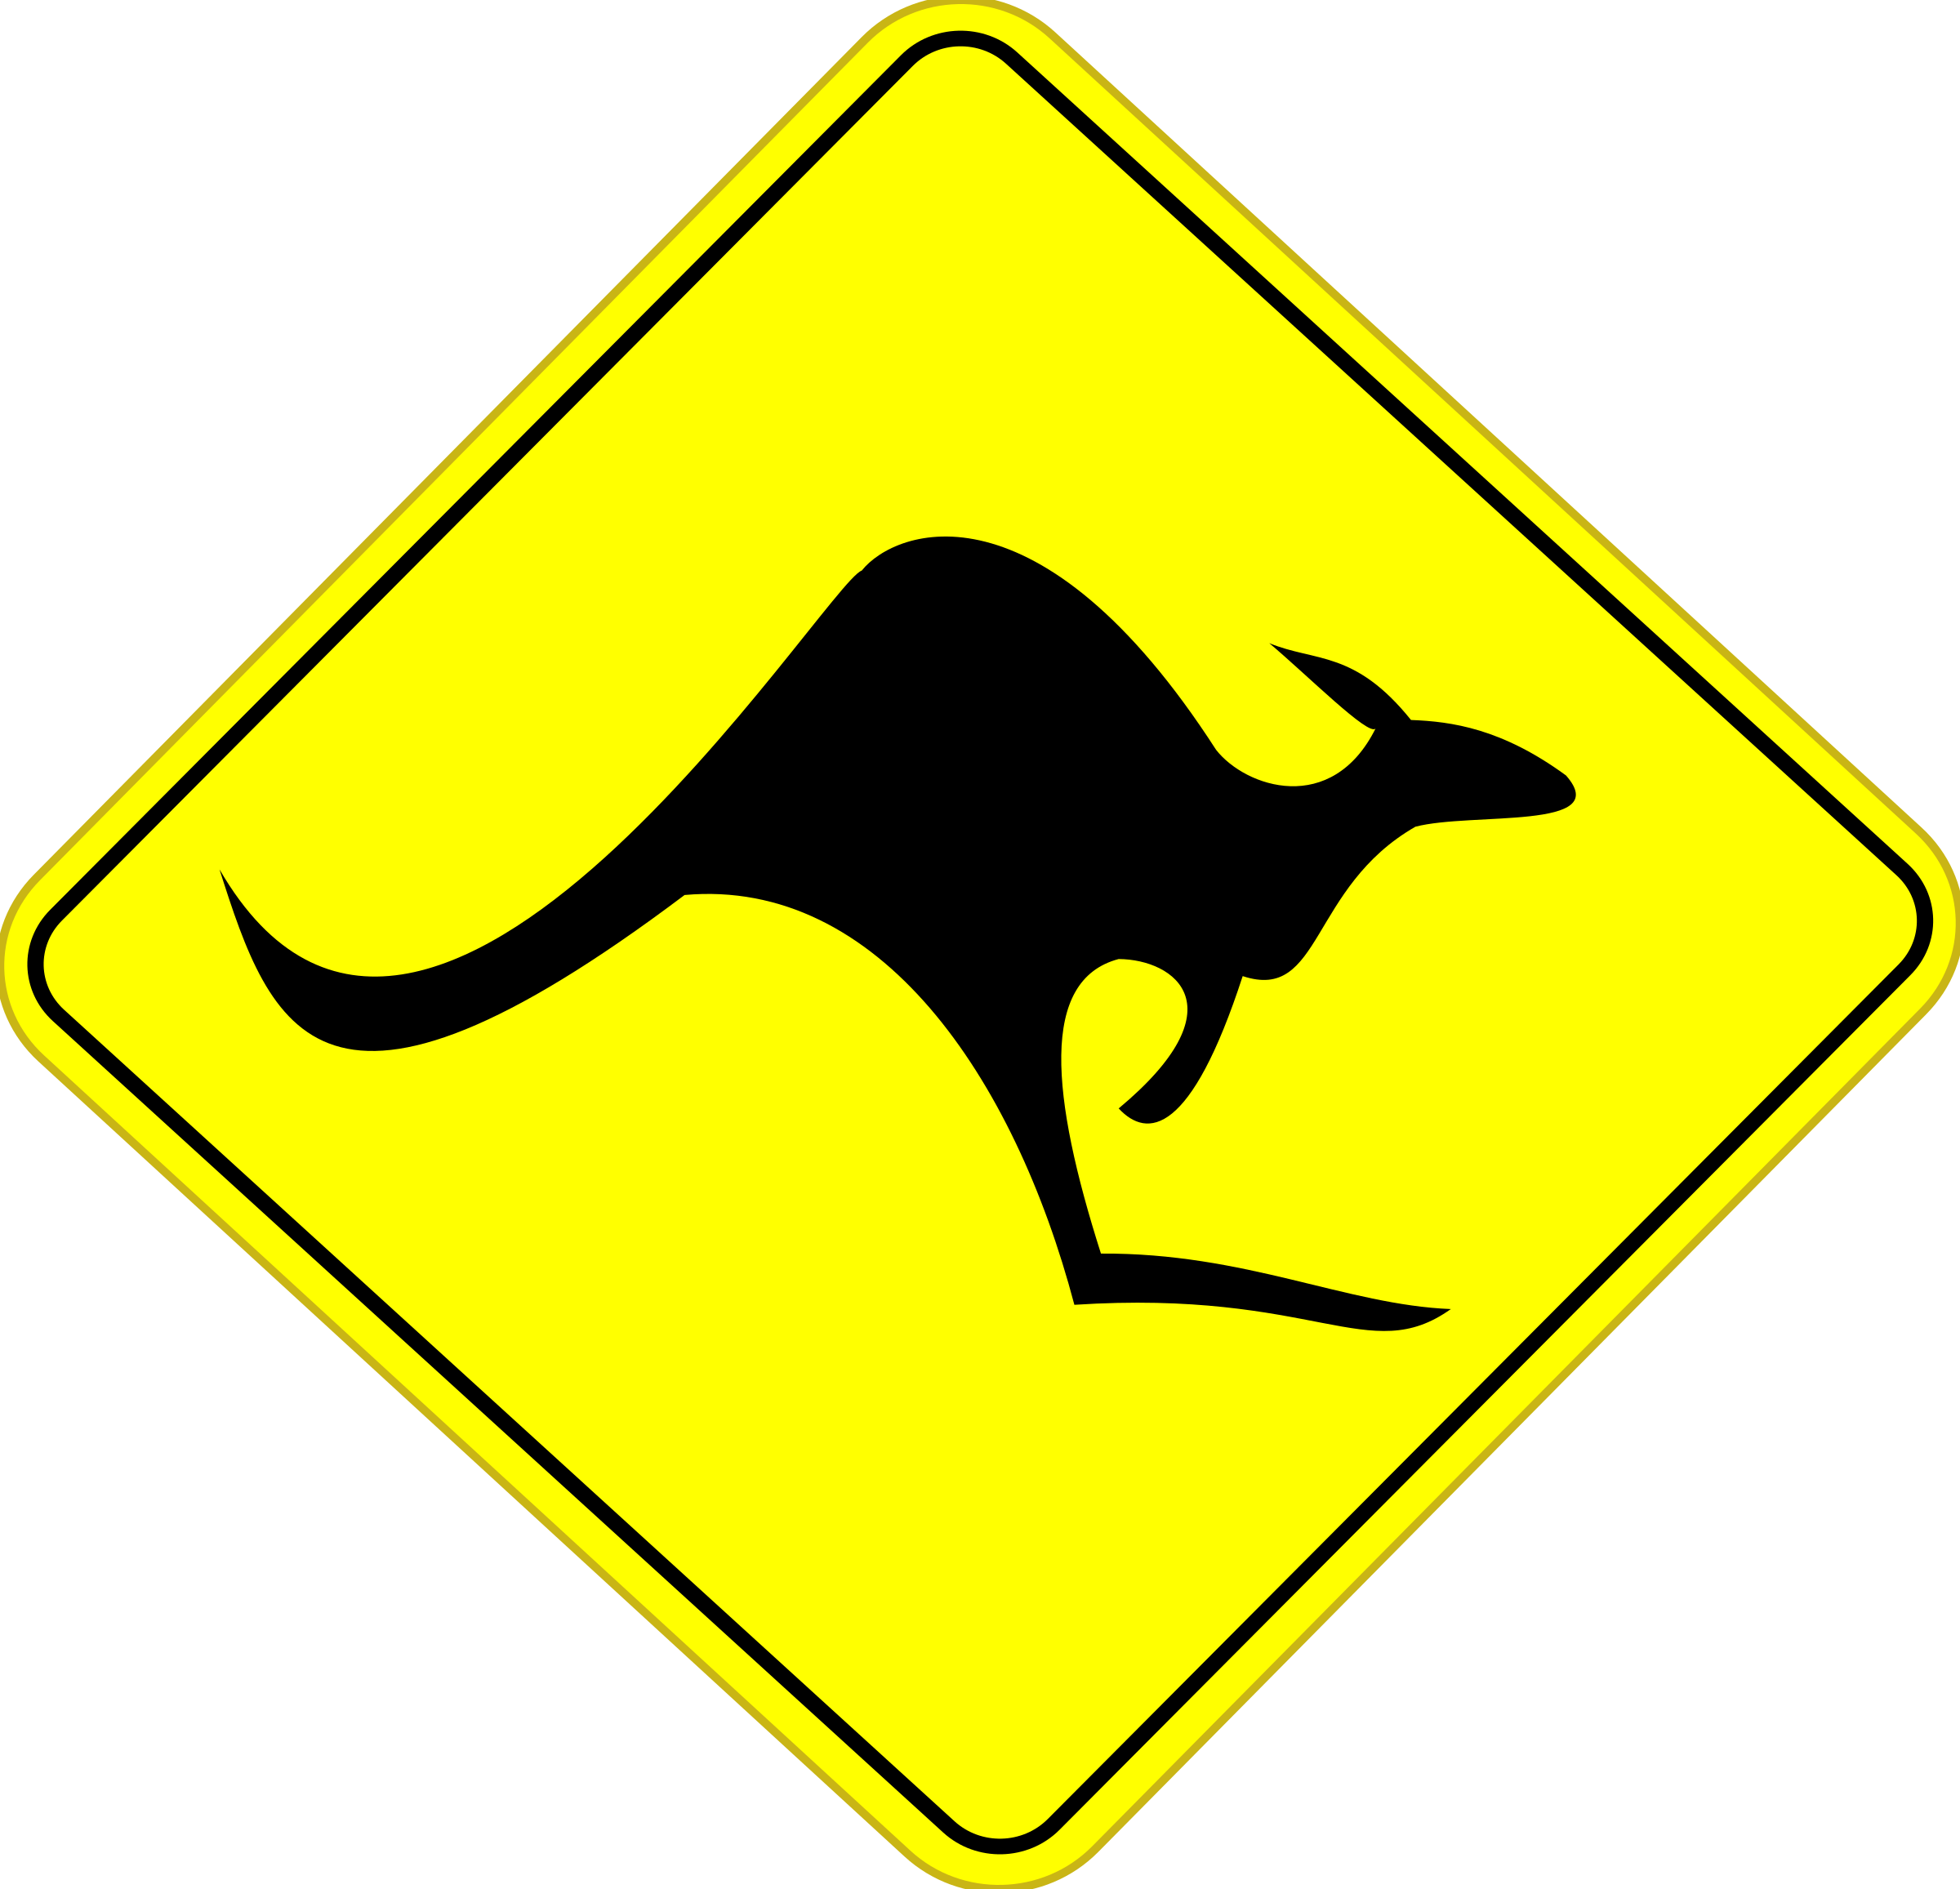 Clipart road trail. Roo sign big image